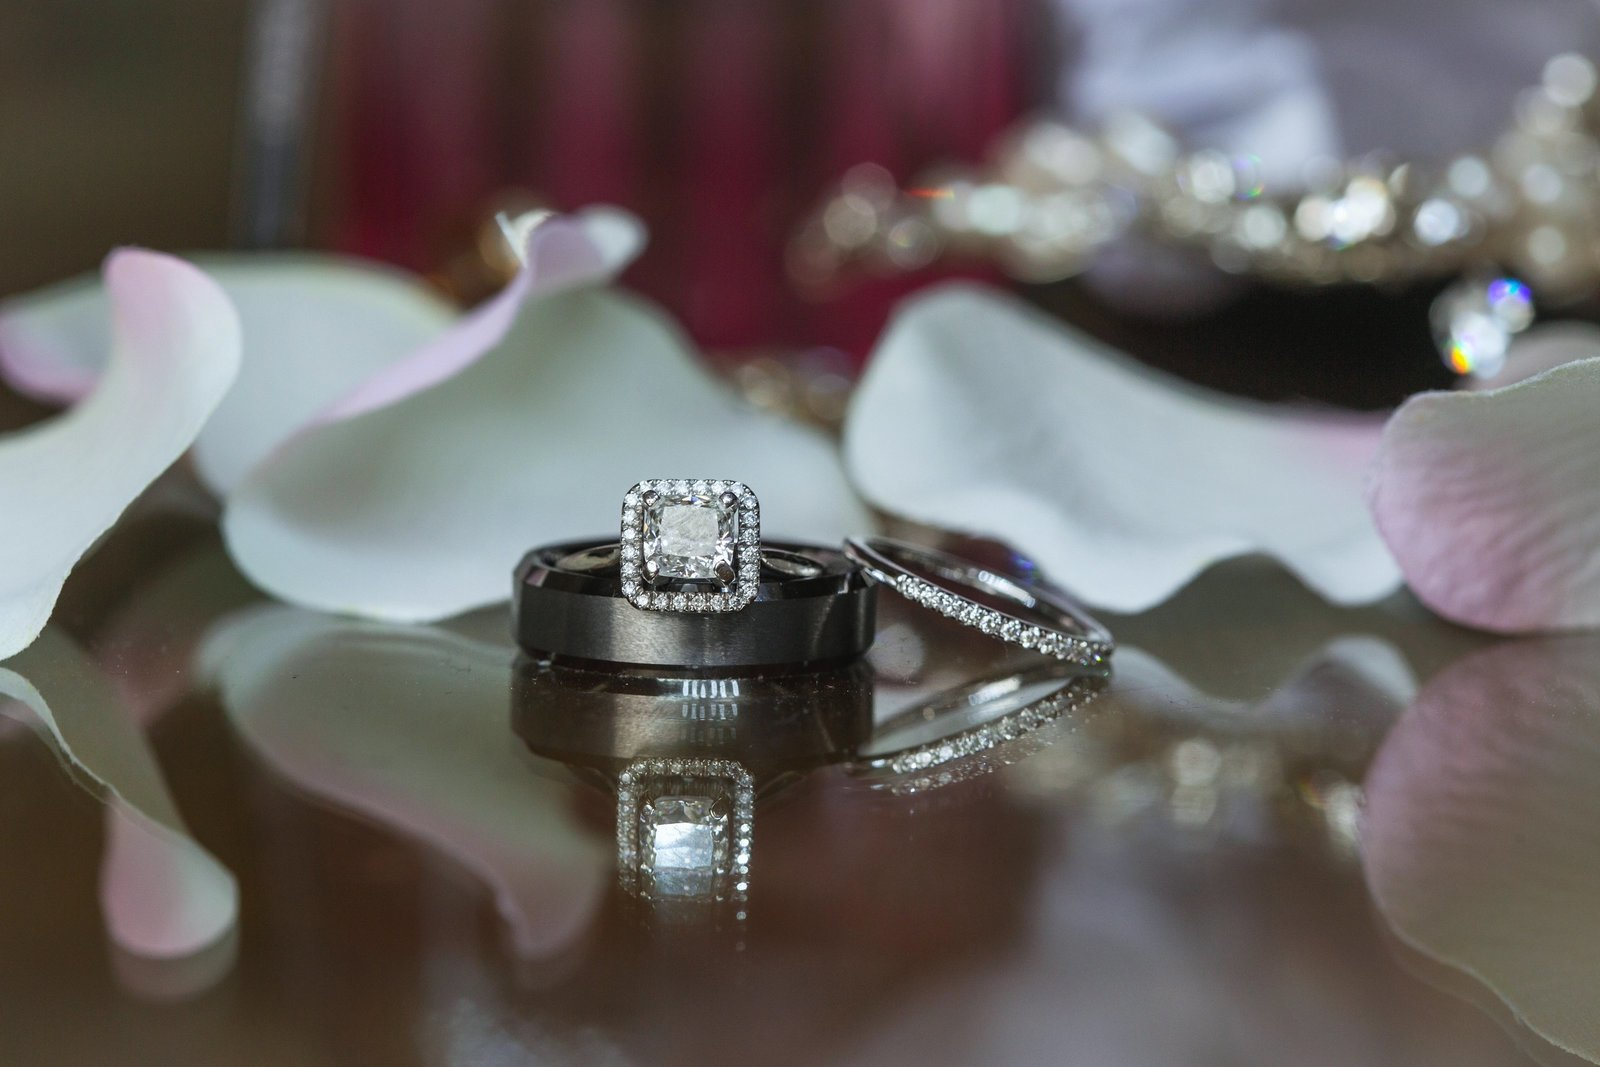 Newhall Mansion ring close up surrounded by white rose petals